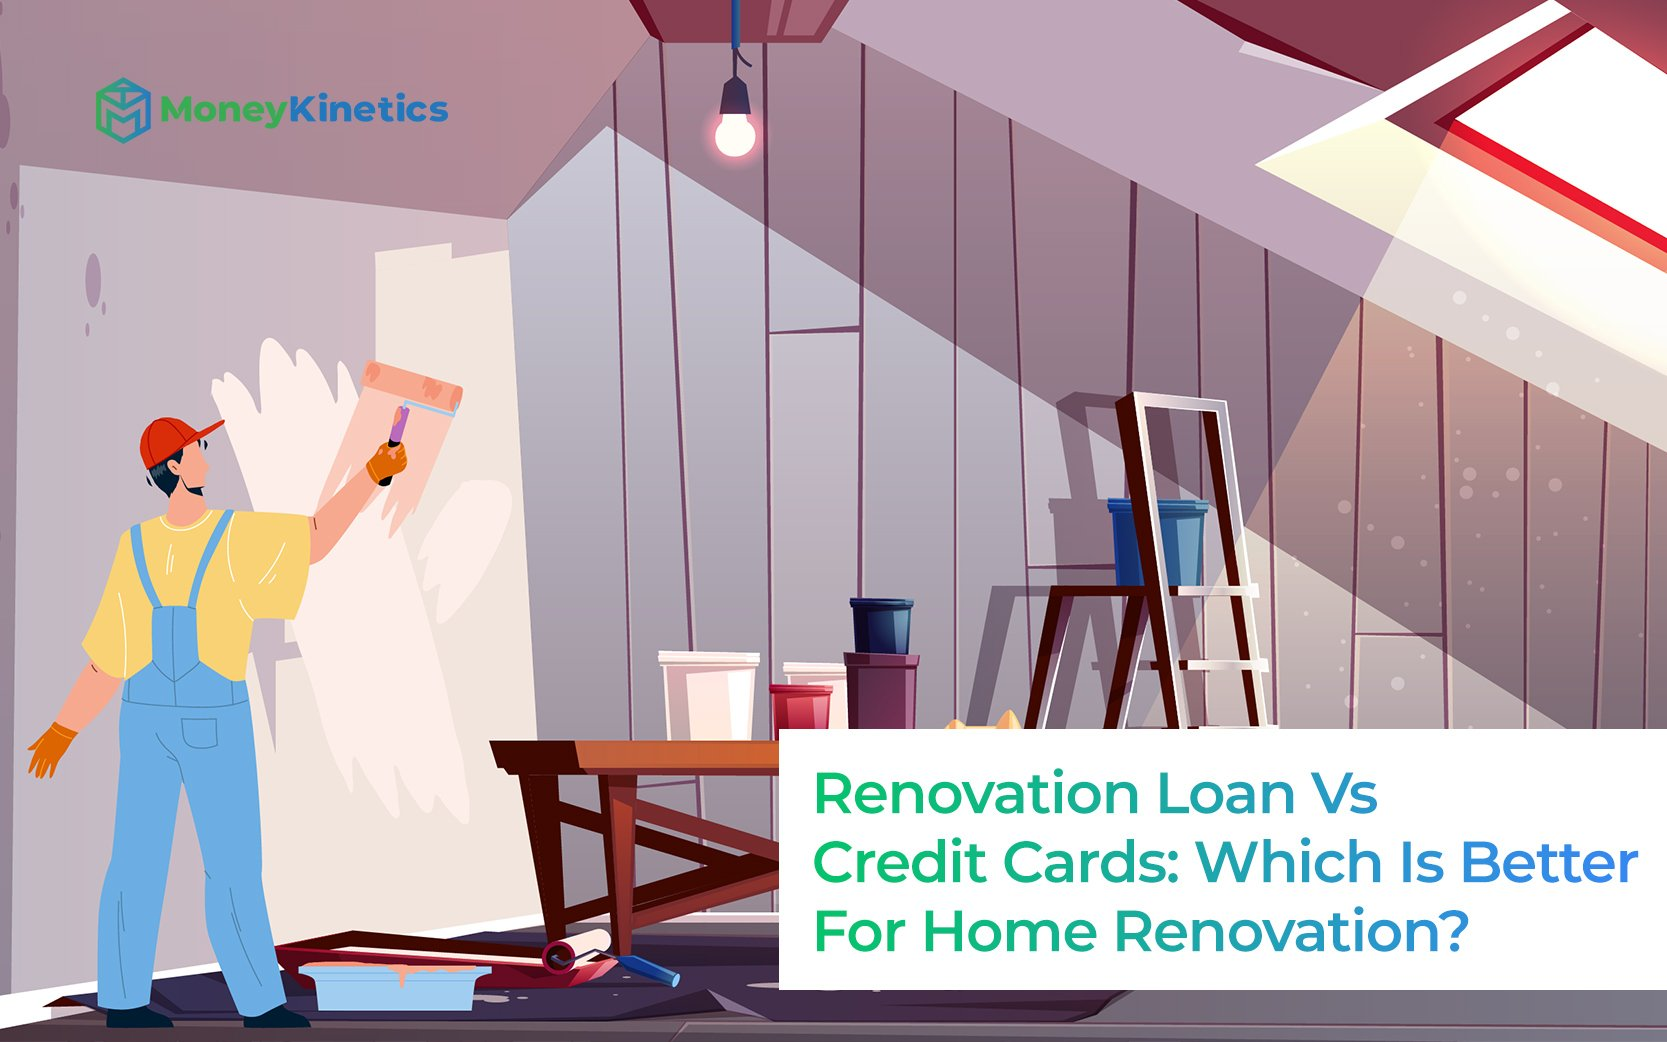 Renovation Loan Vs Credit Cards: Which Is Better For Your Home Renovation?